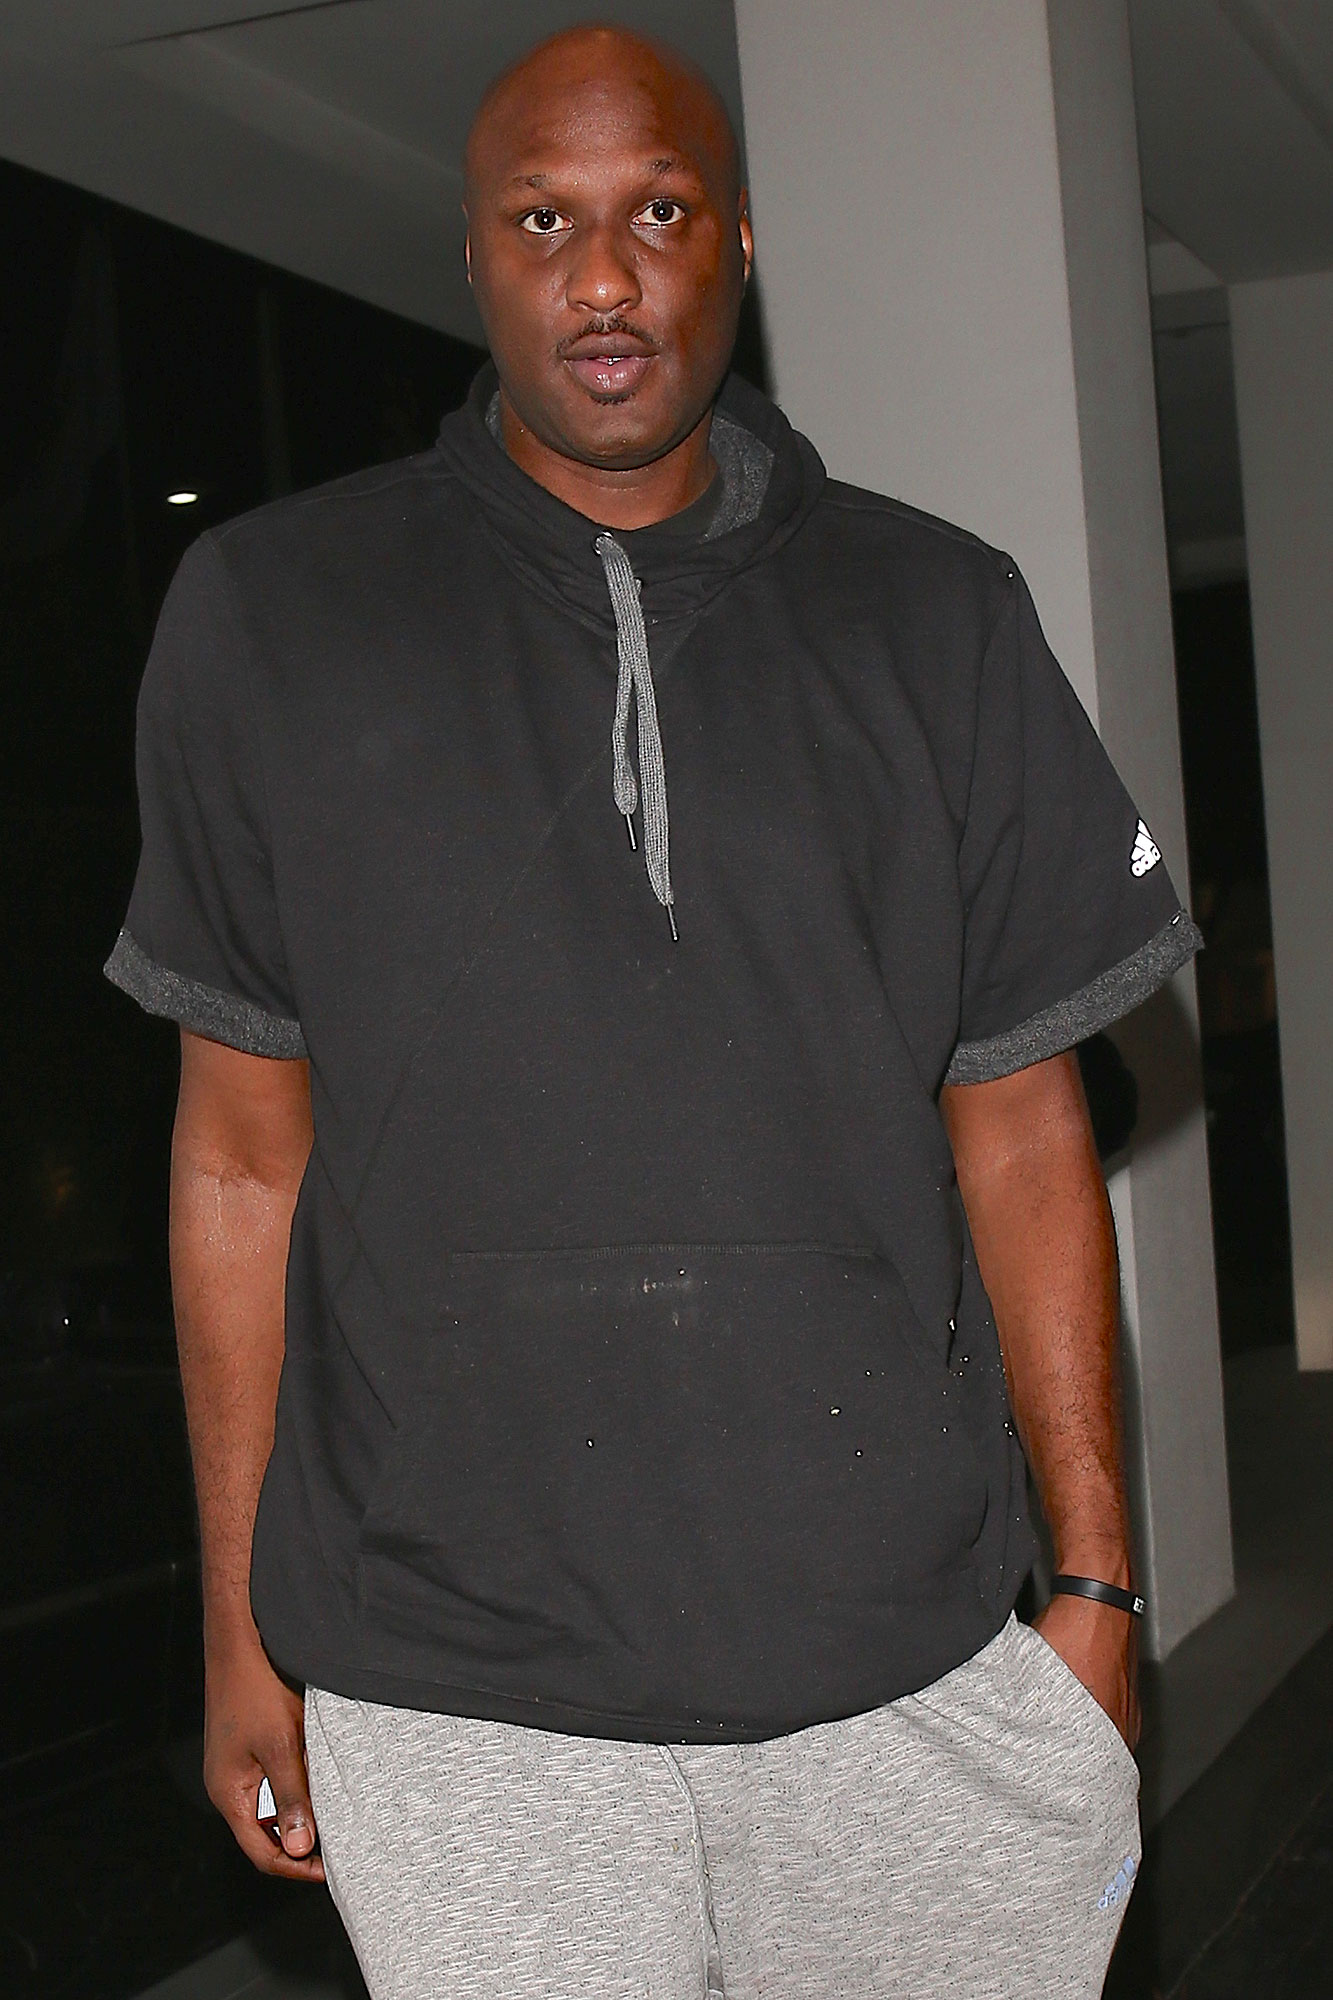 """Lamar Odom continues working on himself and avoids negative influences while recently celebrating his 37th birthday on Sunday. A source says the former NBA star rang in his birthday at home in Los Angeles with some of his best friends and family. """"They had a low-key dinner and it was a nice celebration,"""" says the insider. """"Lamar wanted to keep it really simple."""" According to the source, """"it's been a great thing for Lamar to be back in L.A."""" """"He's away from the negative influences in New York,"""" says the source. """"Everyone who knows and loves him just wants him to get back to his old self, but that will still take some time. He's been through a lot and he's still working on himself."""" AKM-GSI November 9, 2016"""